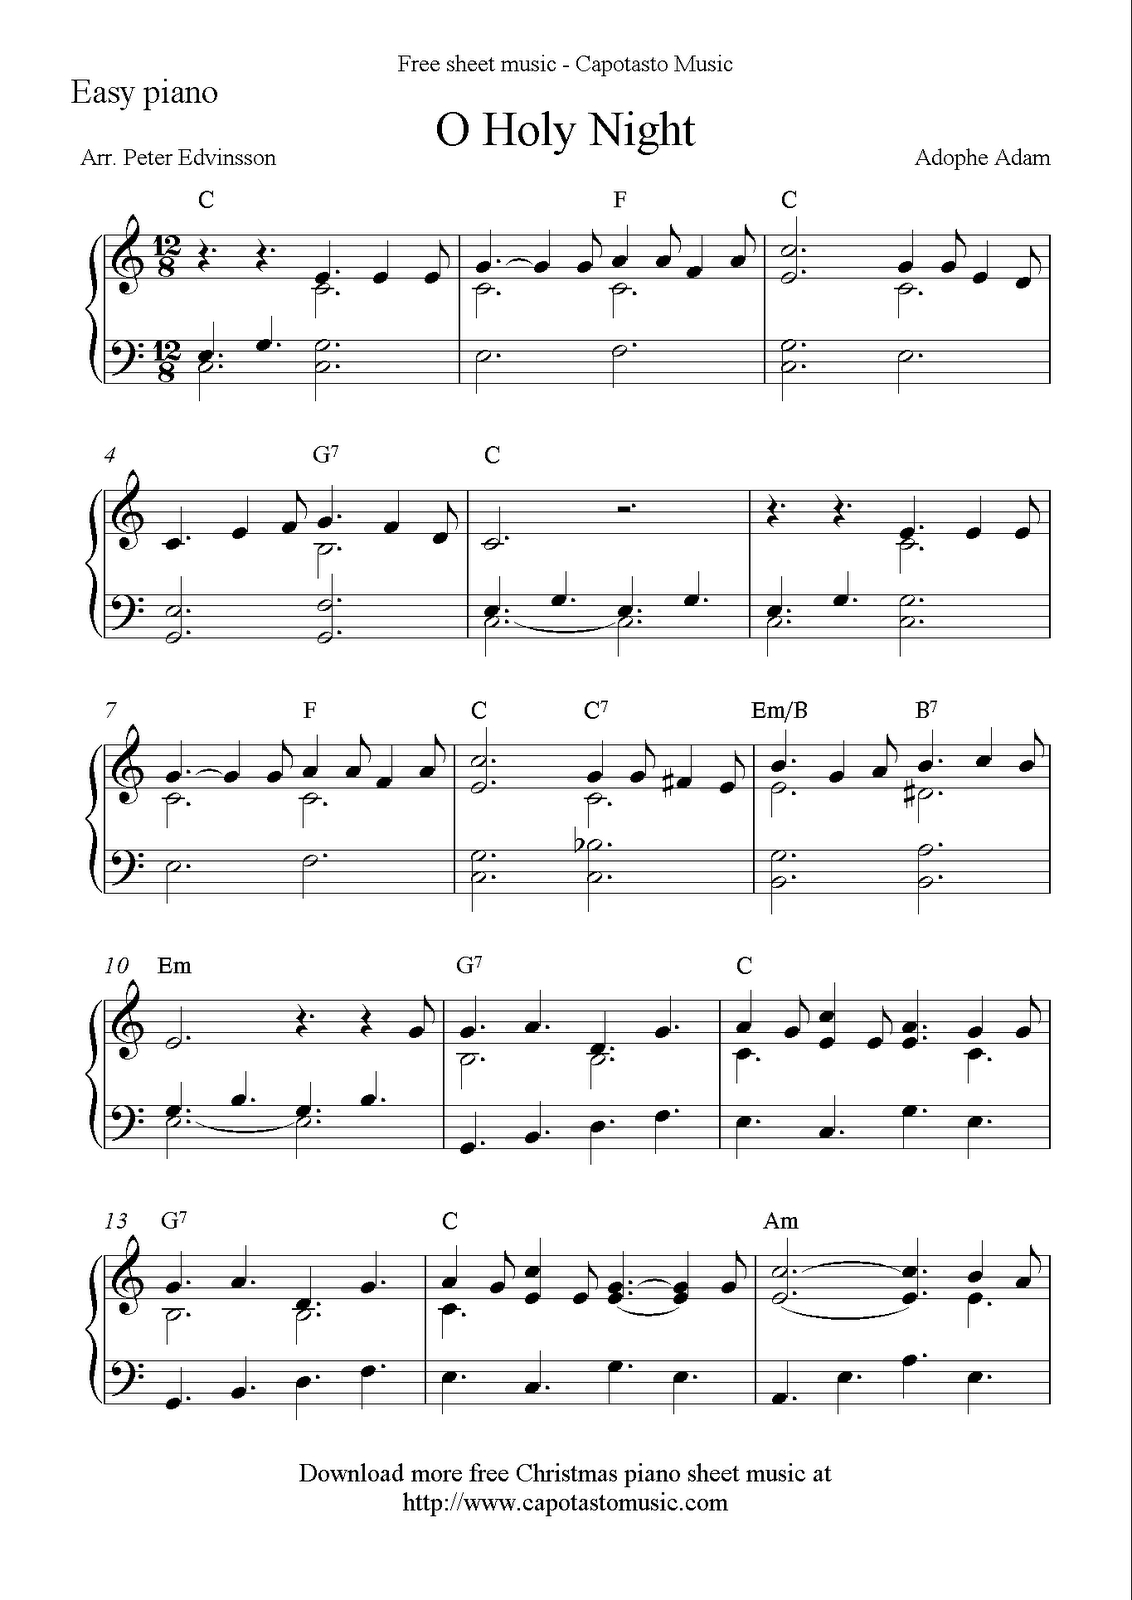 Free Sheet Music Scores: Free Easy Christmas Piano Sheet Music, O - Free Christmas Piano Sheet Music For Beginners Printable